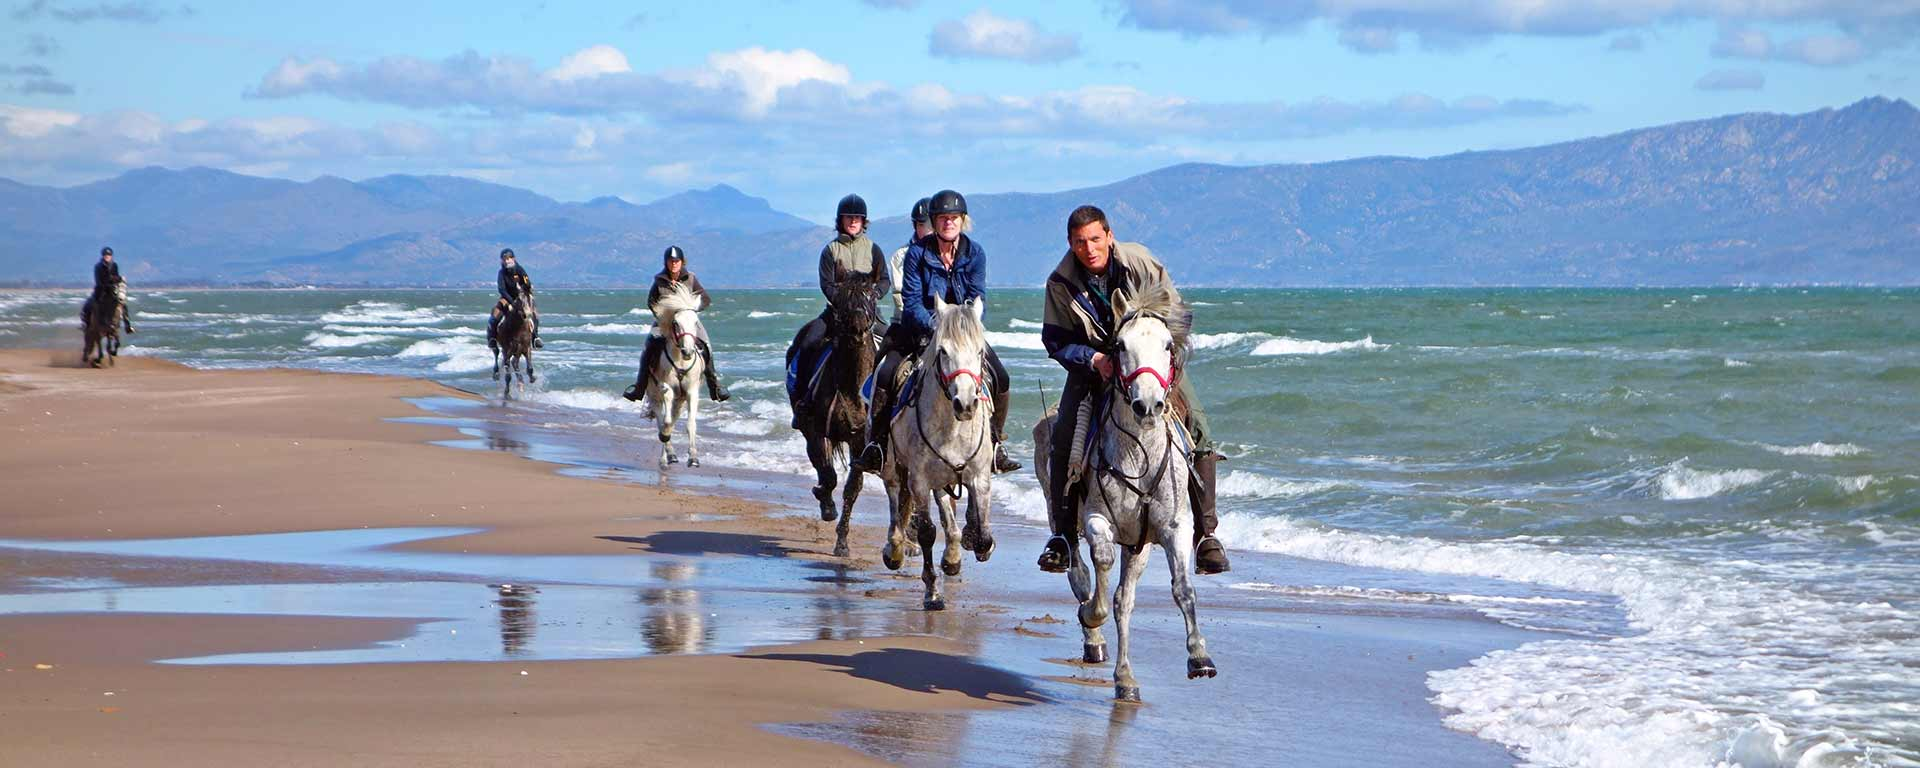 Horse riding on the beach and by the sea